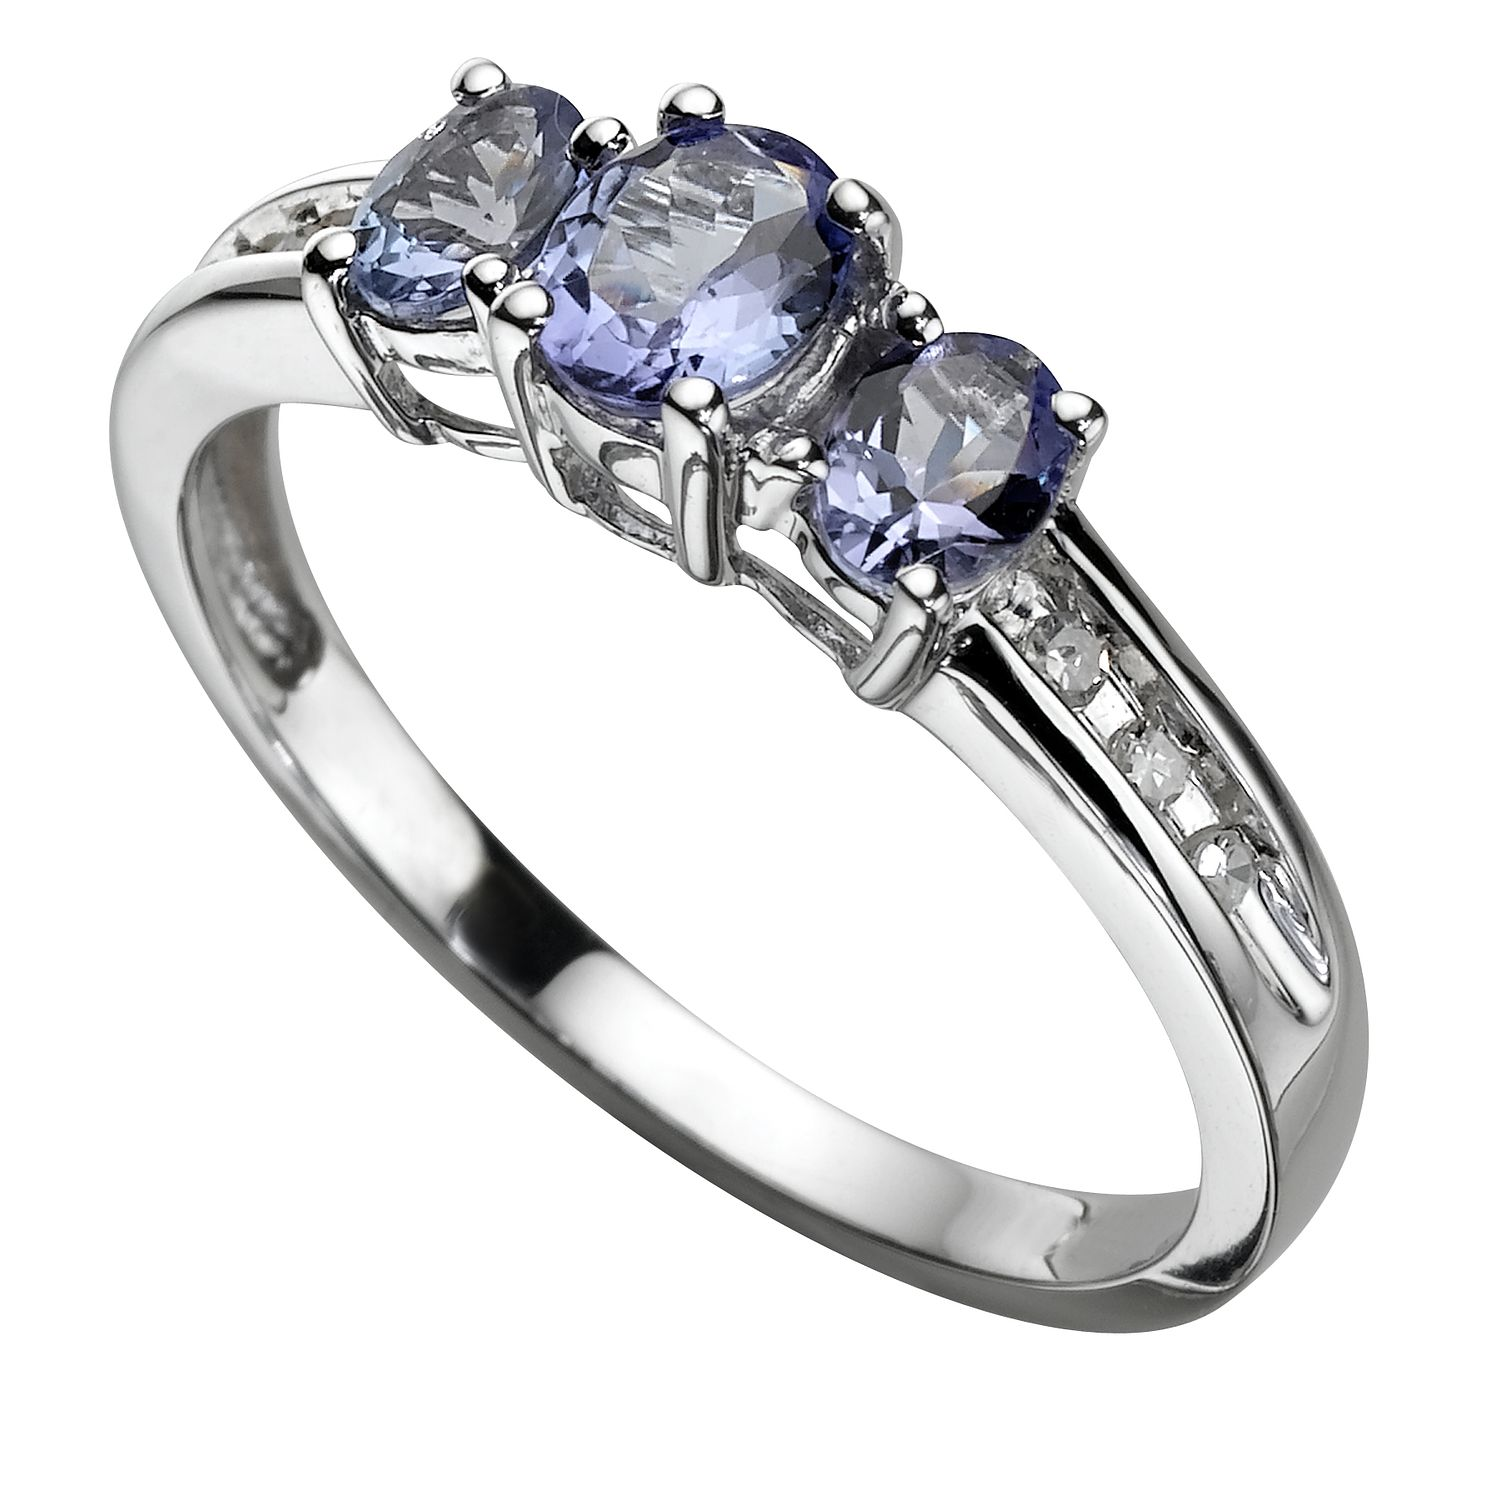 tanzanite ed with bands a fit wid sterling elsa curved silver id jewelry constrain band peretti rings ring hei m in fmt